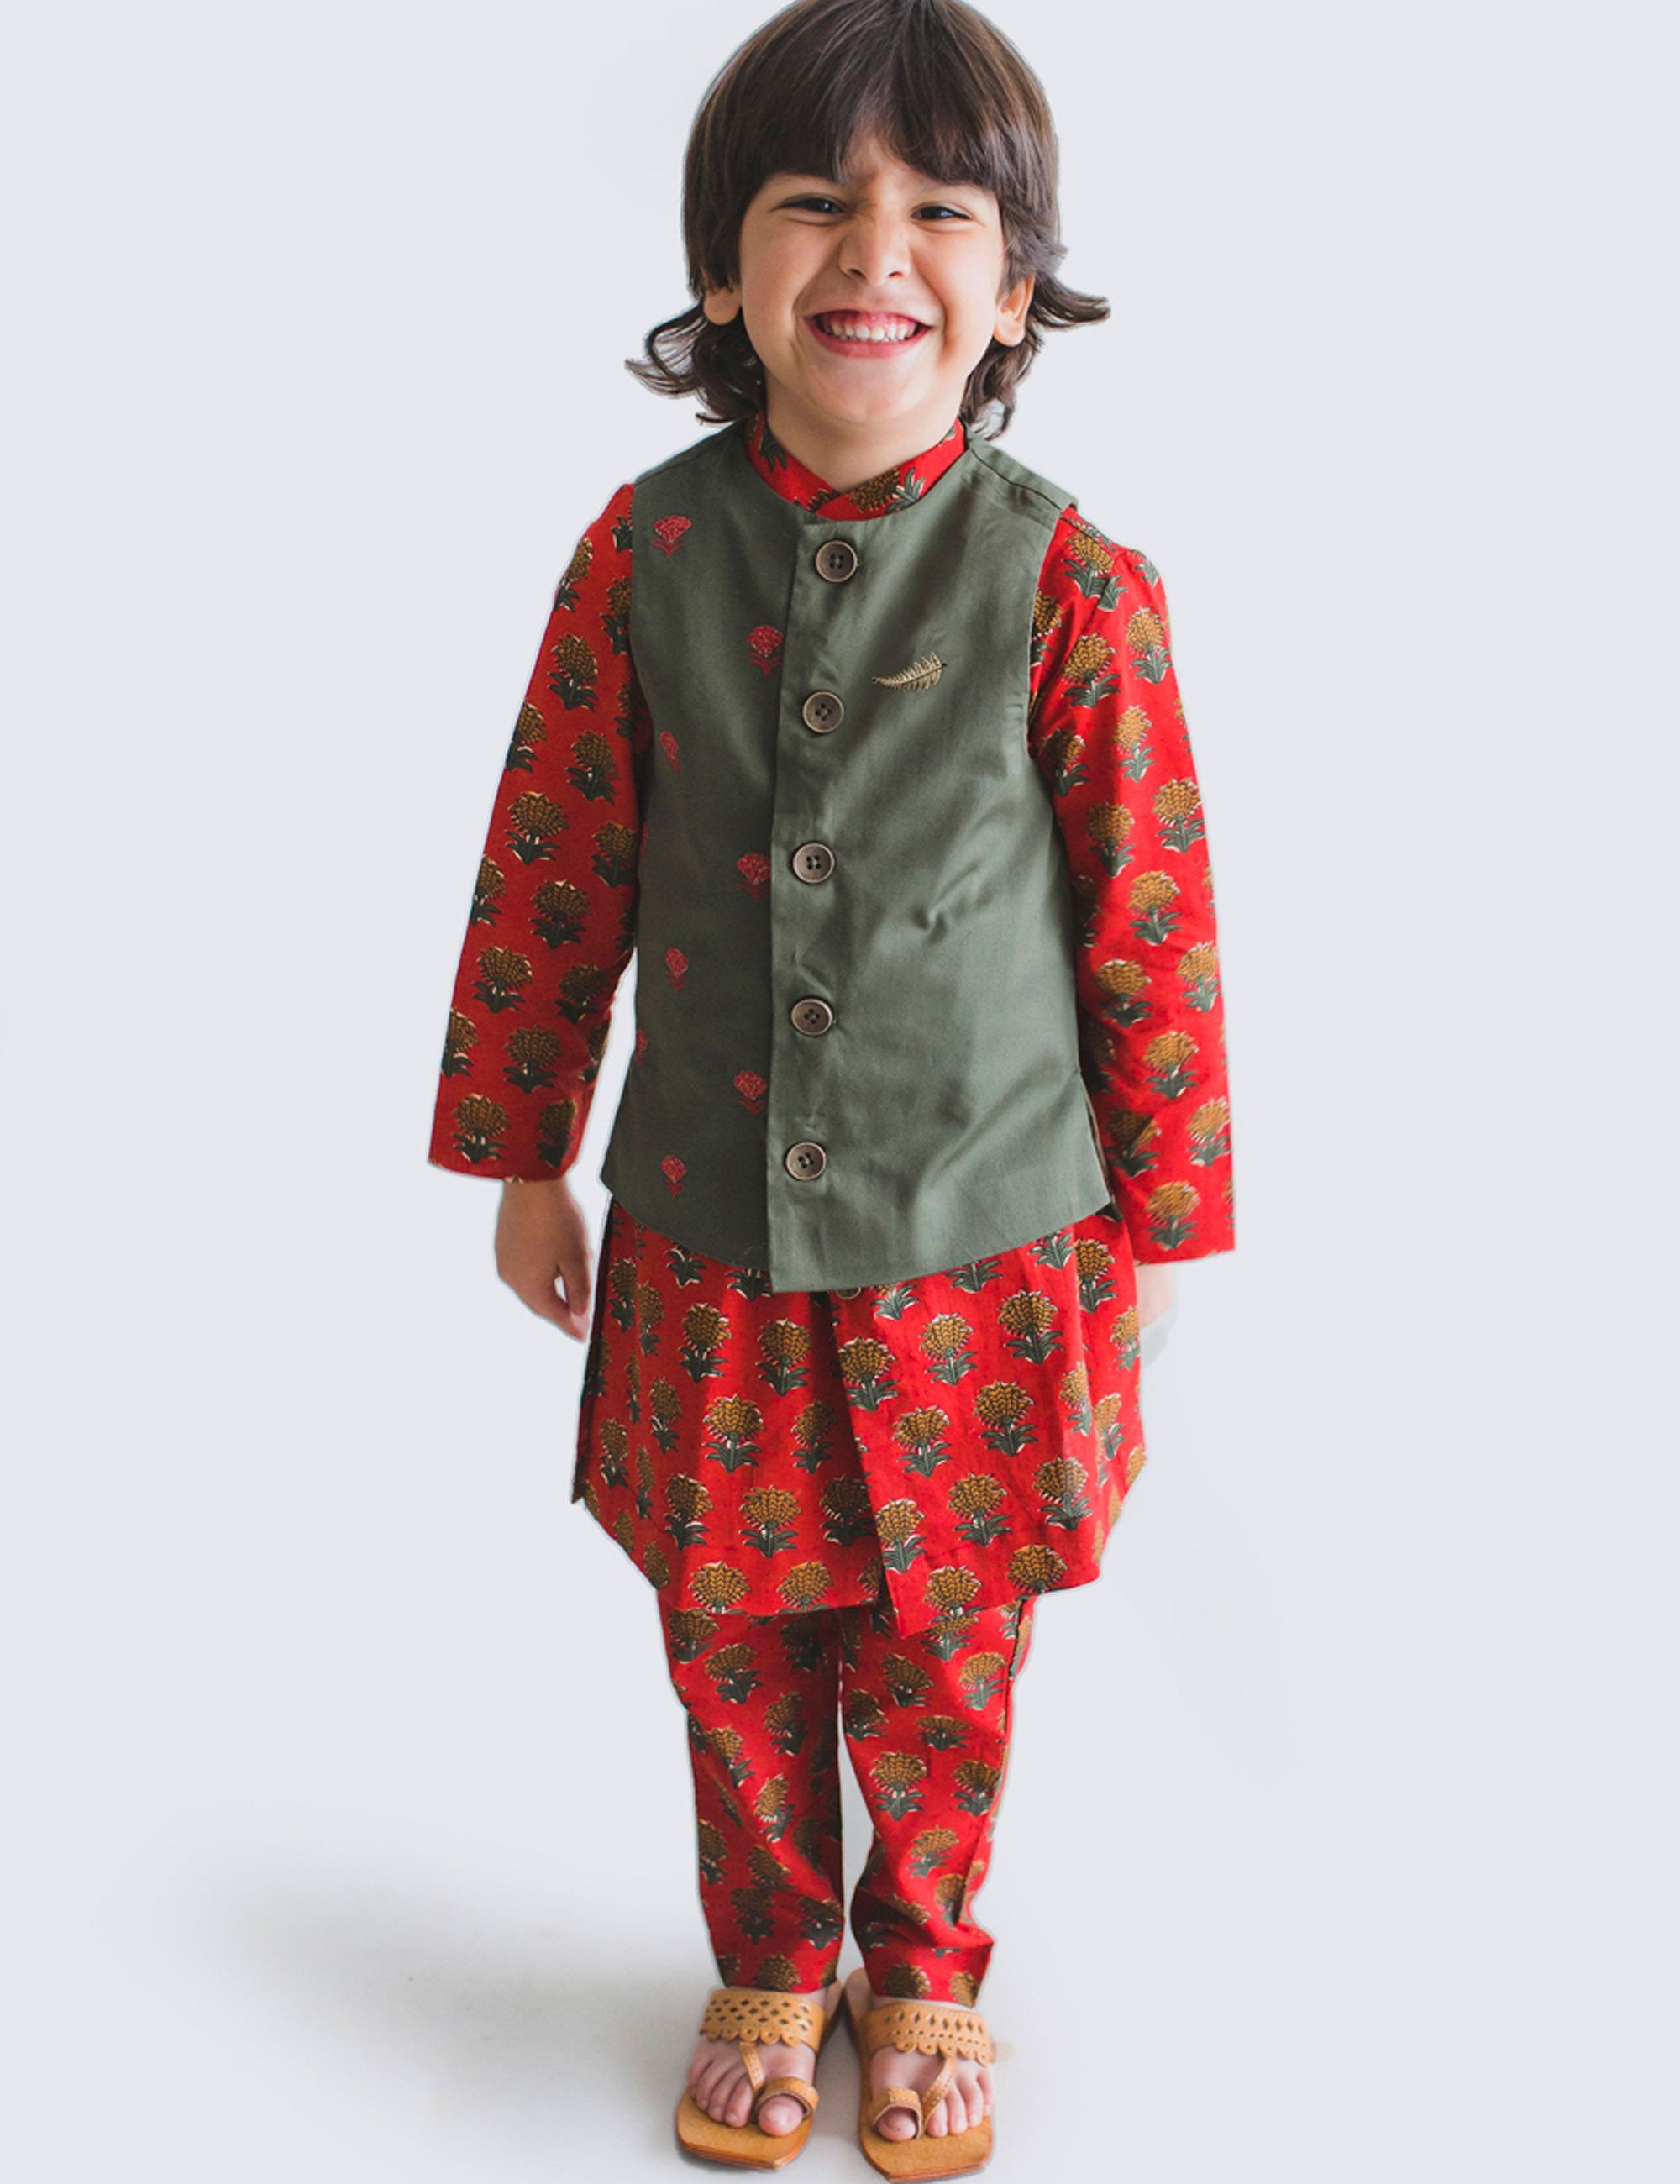 Cotton Boy Bundi Kurta Set Maroon Floral 3 Pc